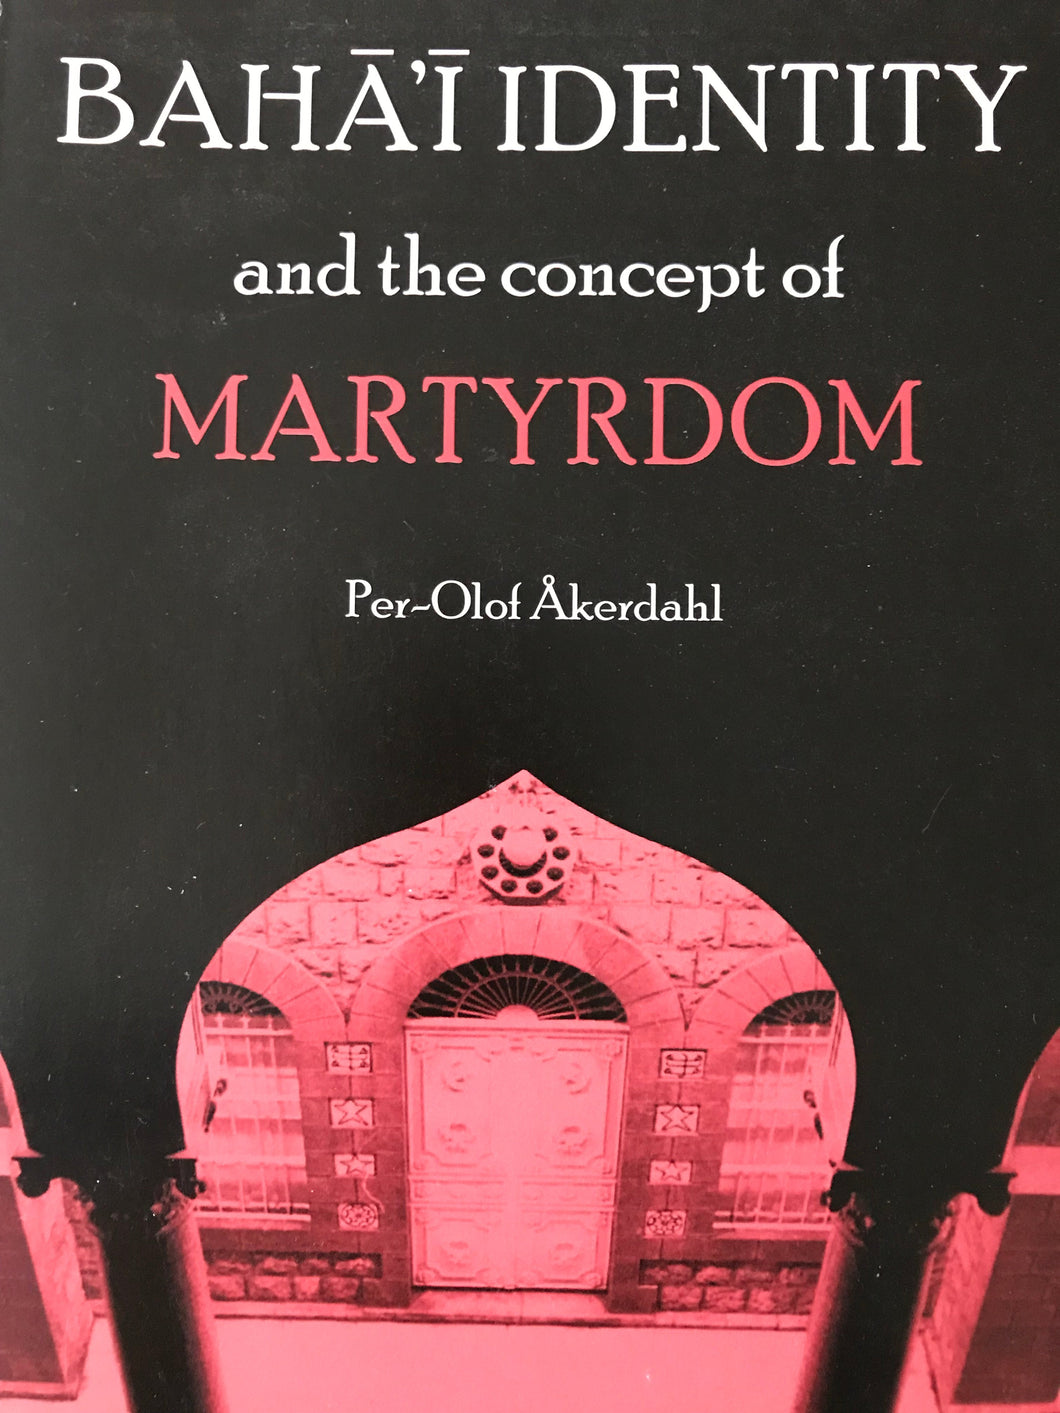 Bahá'í Identity and the concept of martyrdom